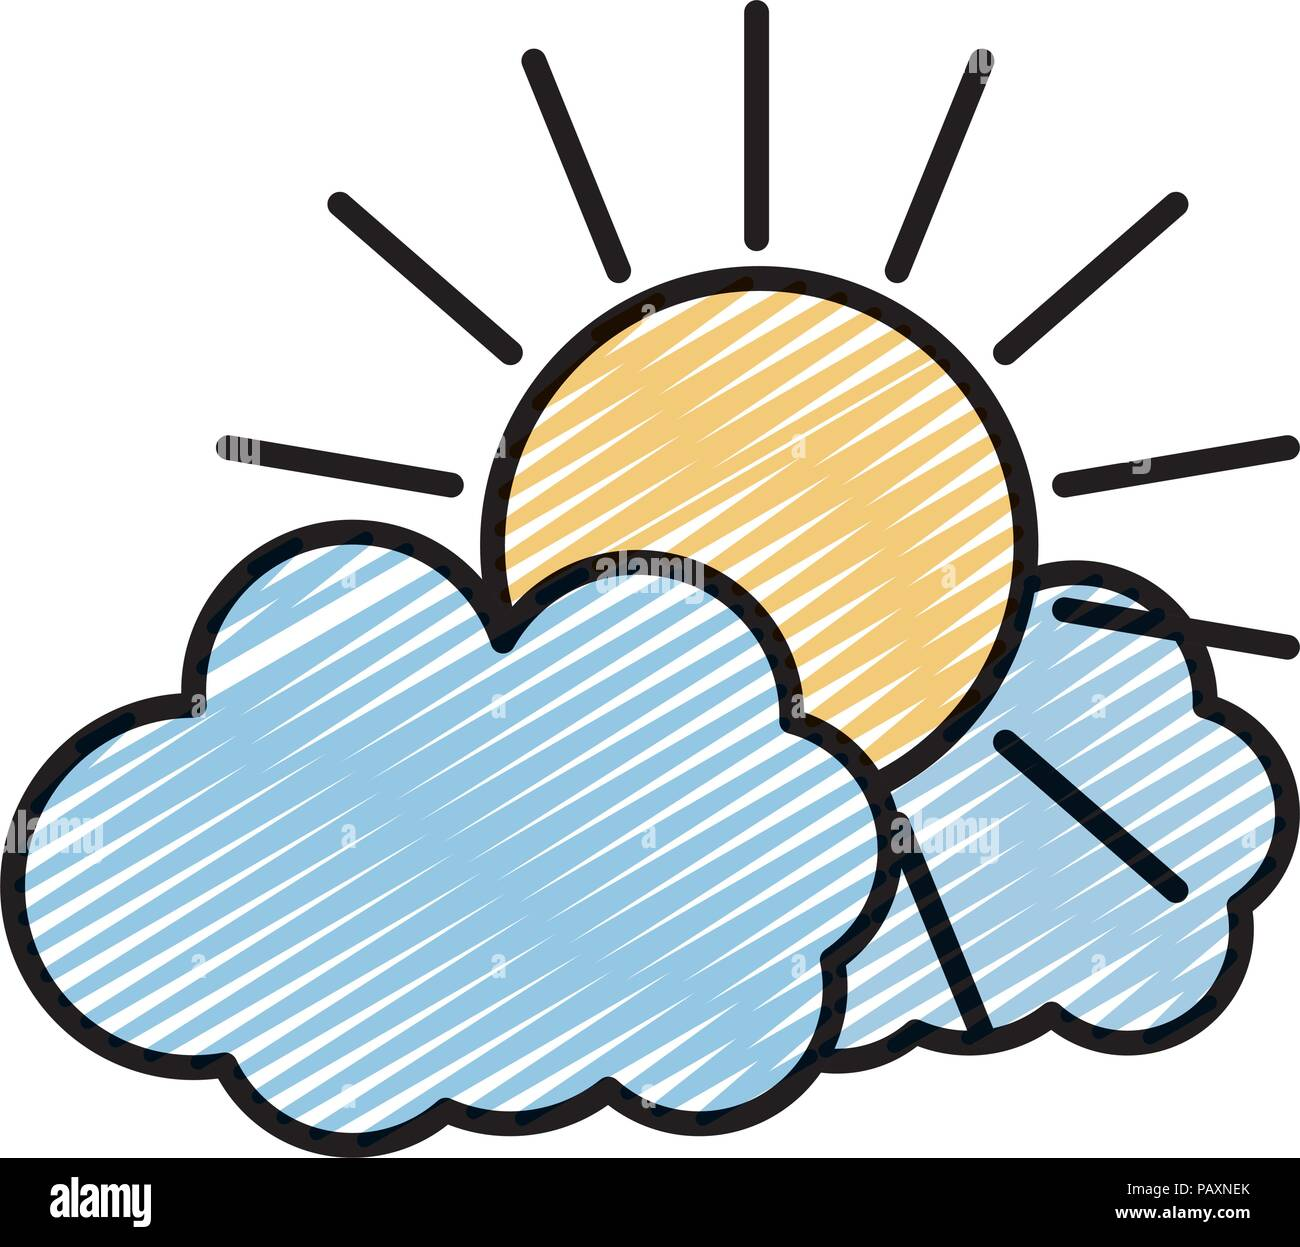 doodle nature sun weather with fluffy clouds - Stock Image